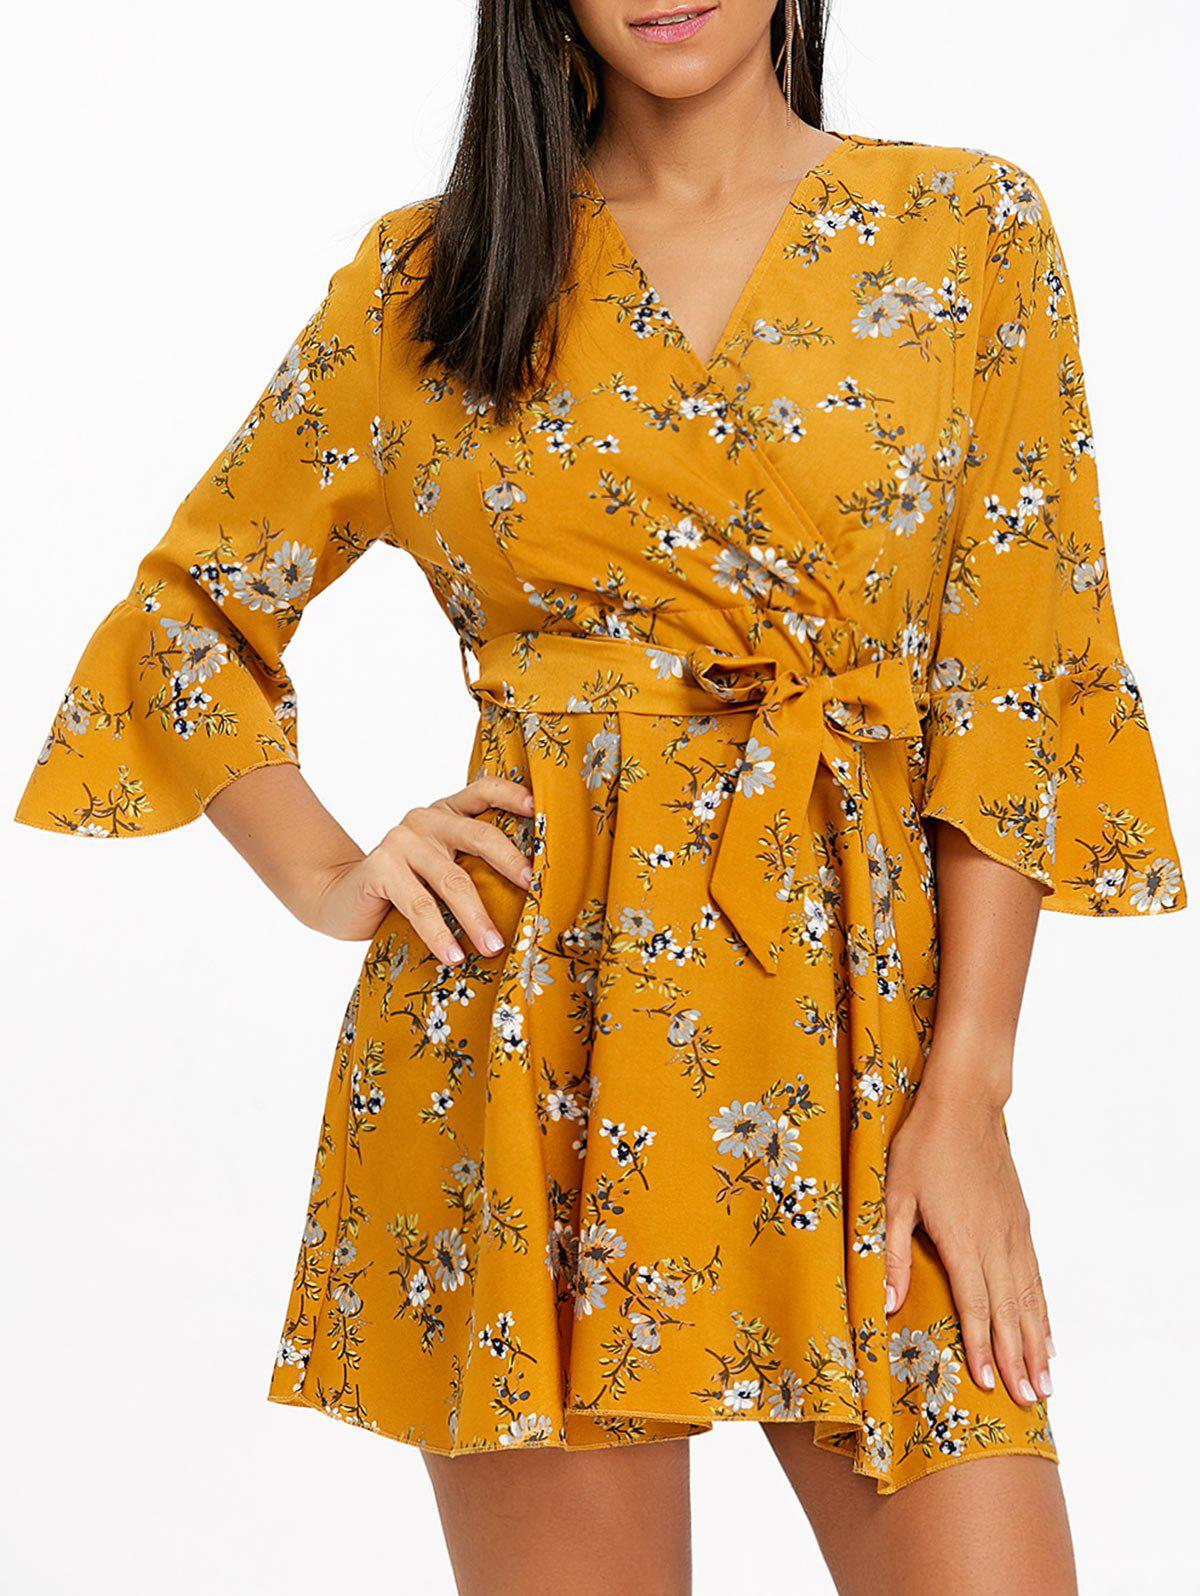 Floral Print Bell Sleeve Chiffon Mini Dress - YELLOW M